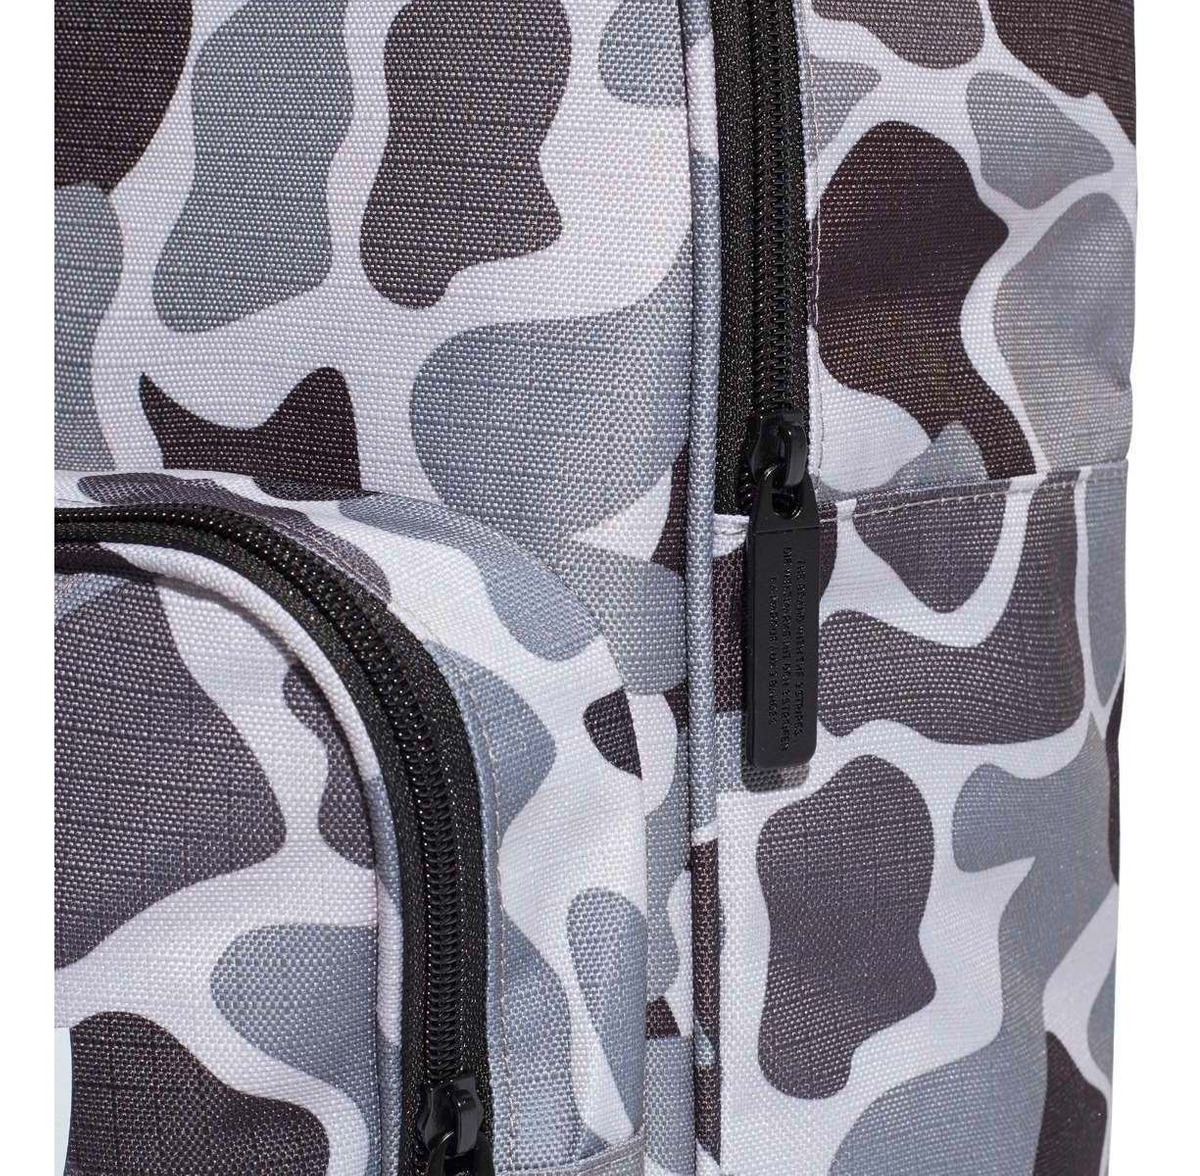 Mochila adidas Classic Camouflage Bp Dh1014 Zooko